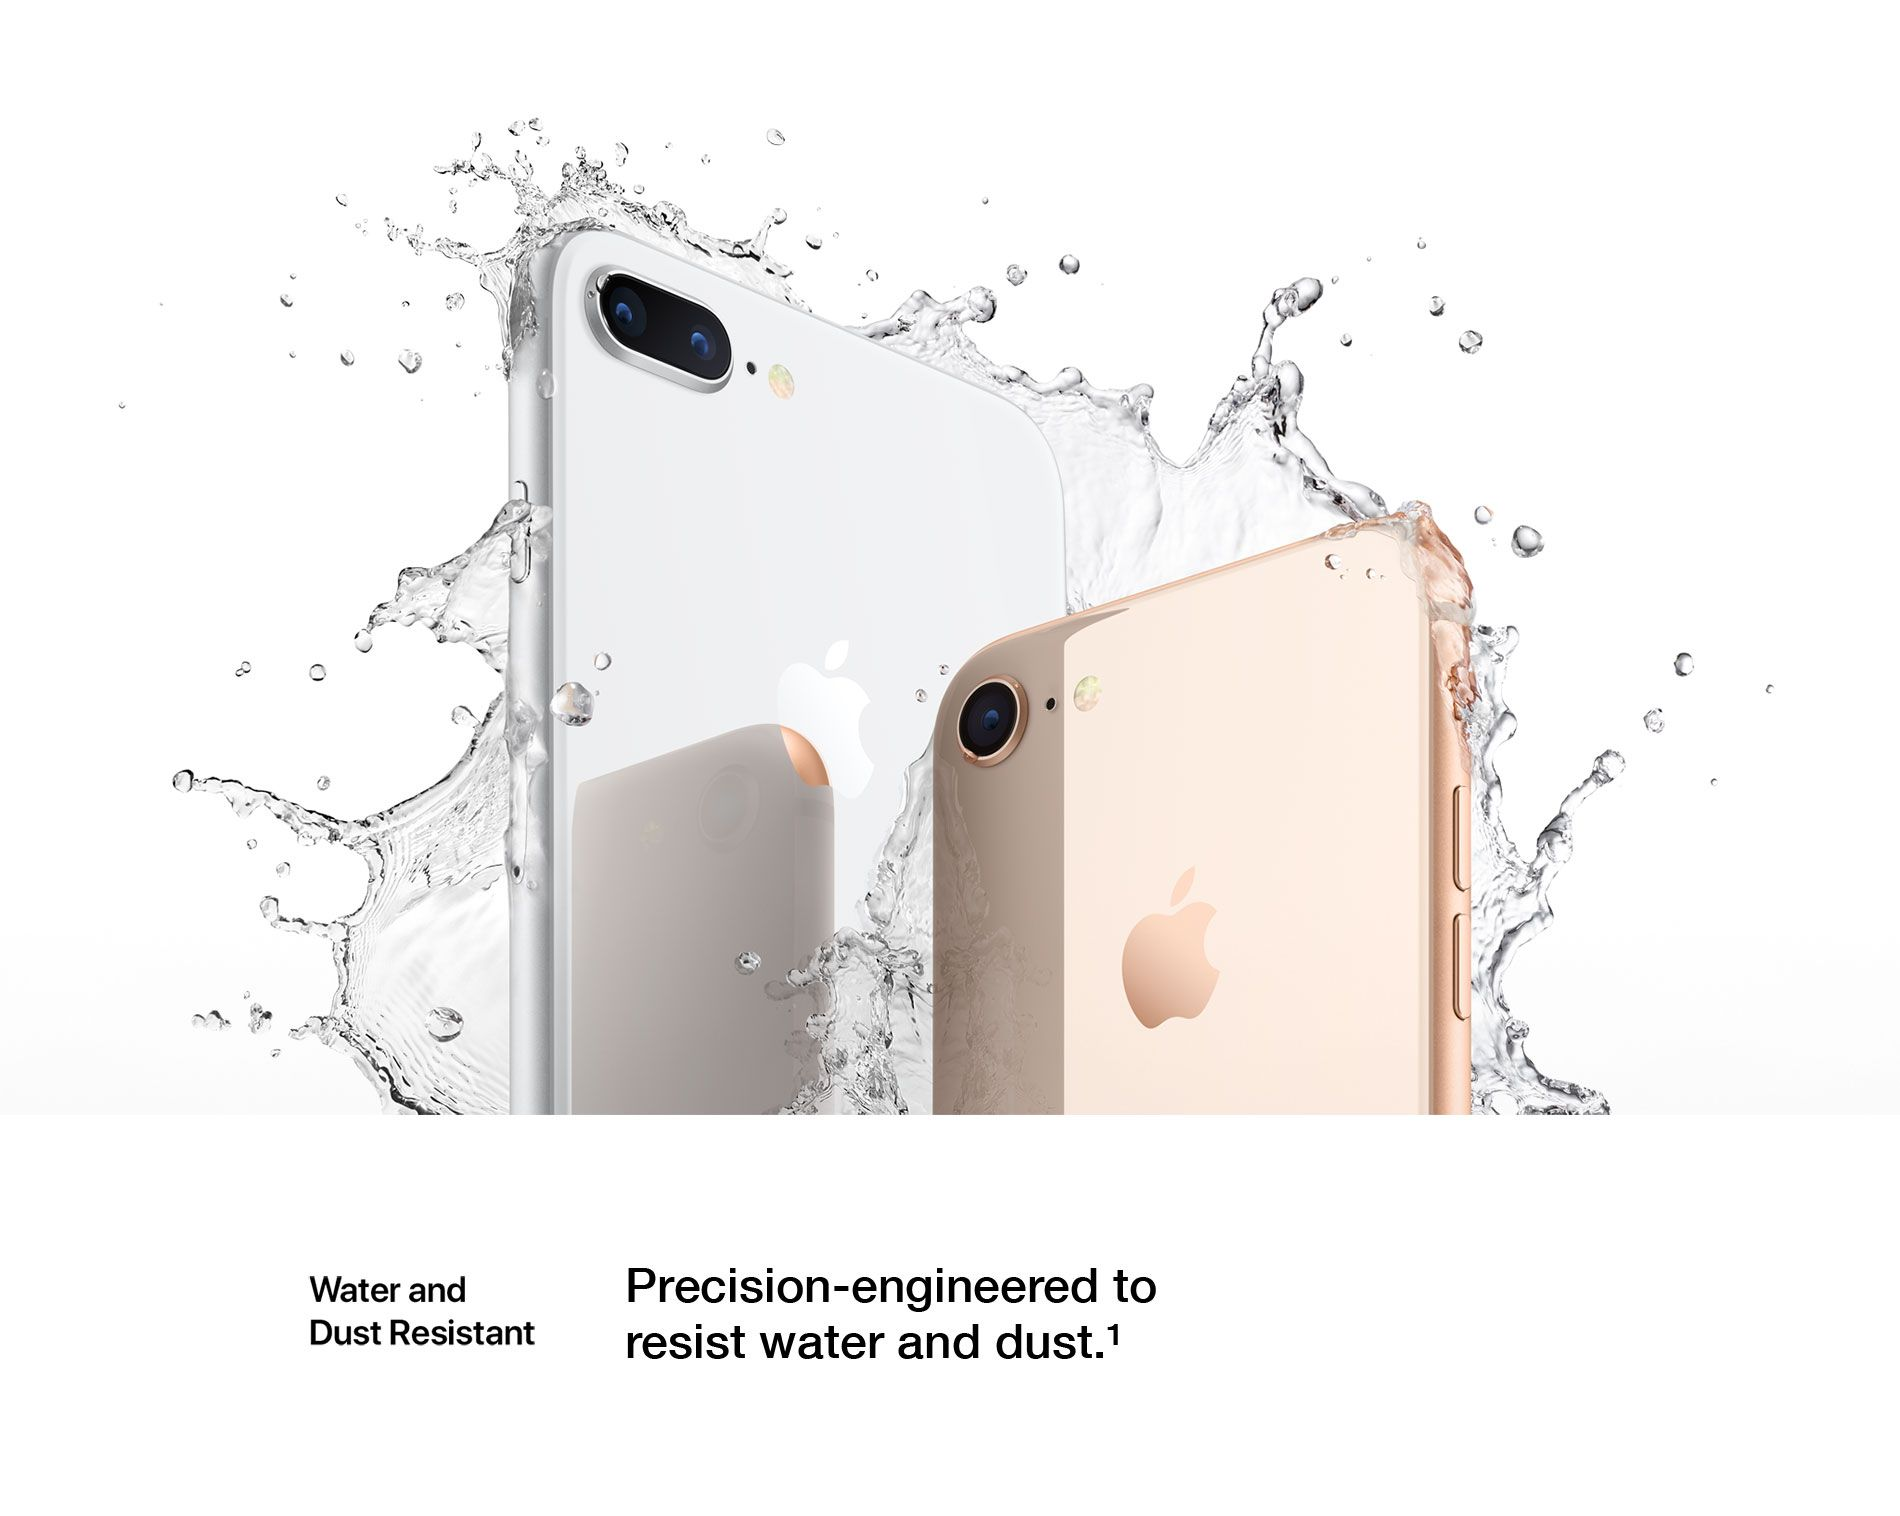 Water and Dust Resistant